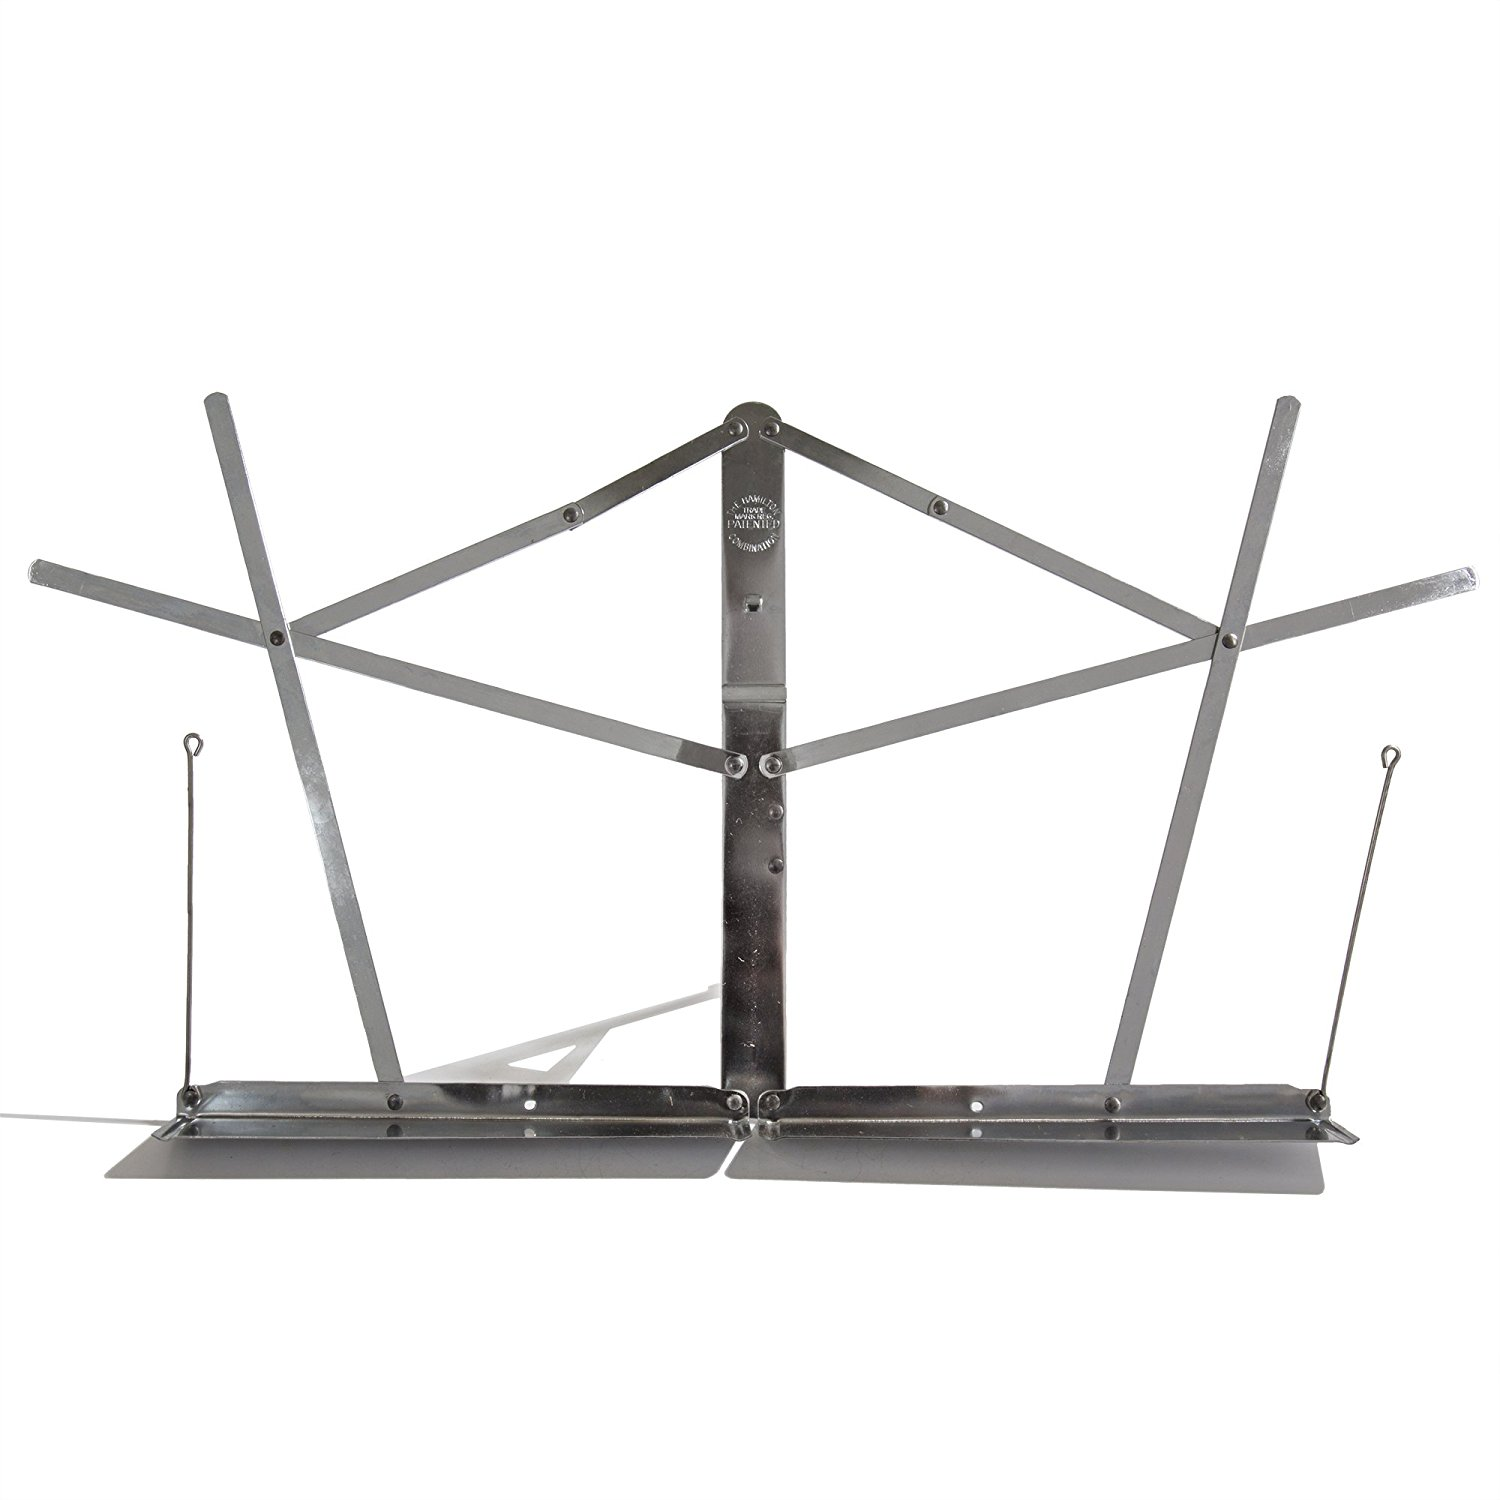 Hamilton Stands Tabletop Music Stand